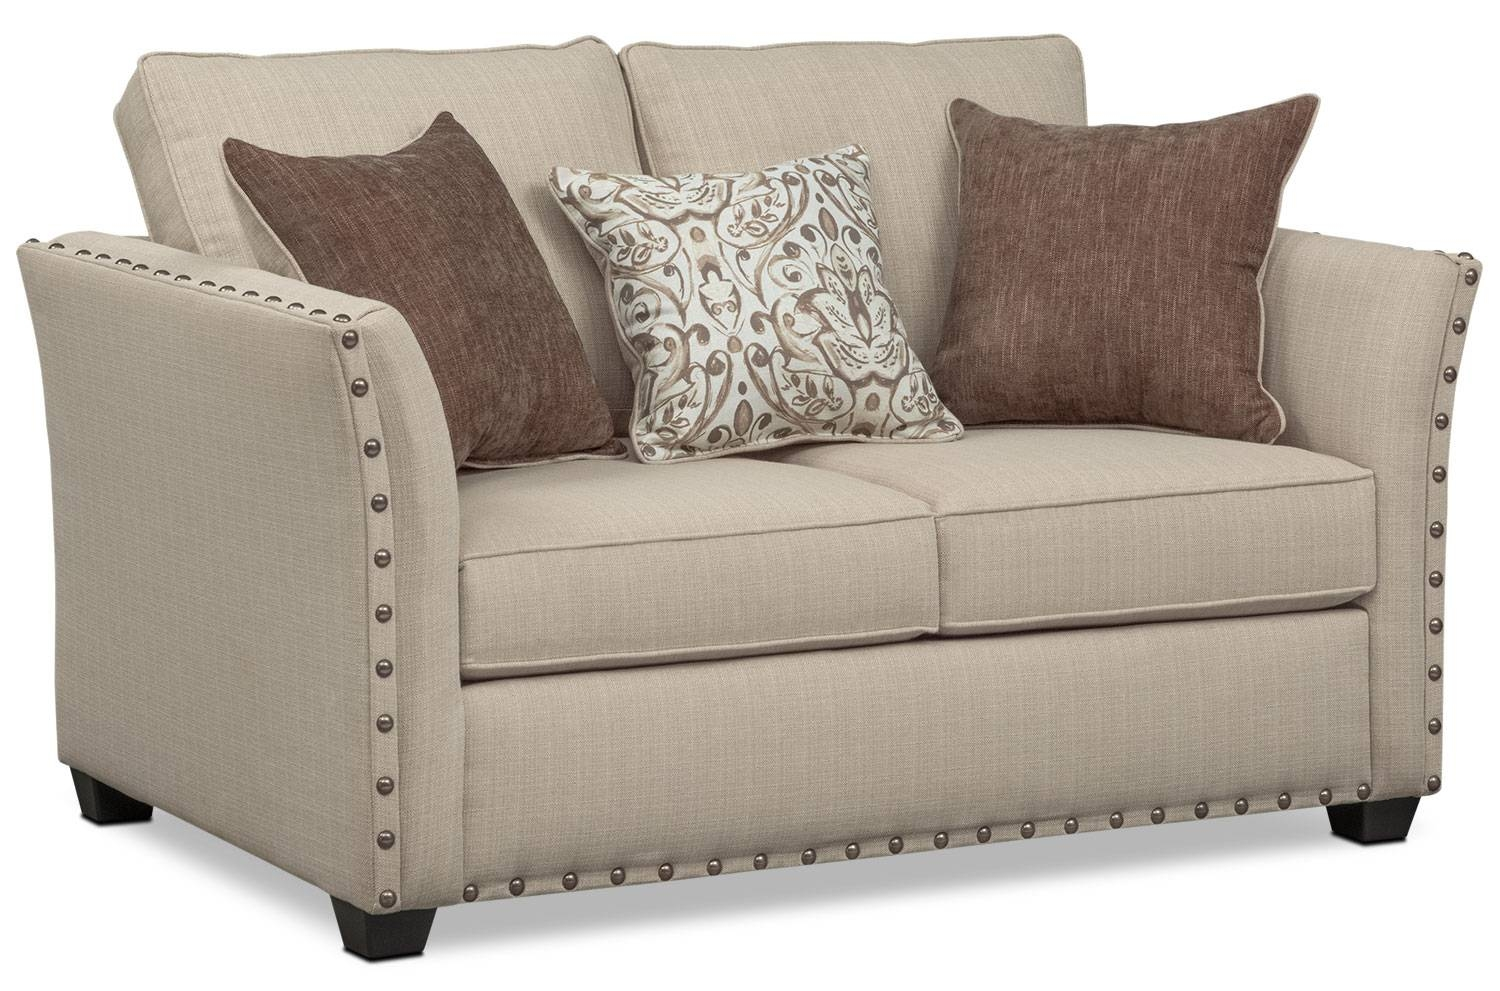 Mckenna Queen Memory Foam Sleeper Sofa, Loveseat, And Chair Set For Sofa And Chair Set (View 21 of 30)